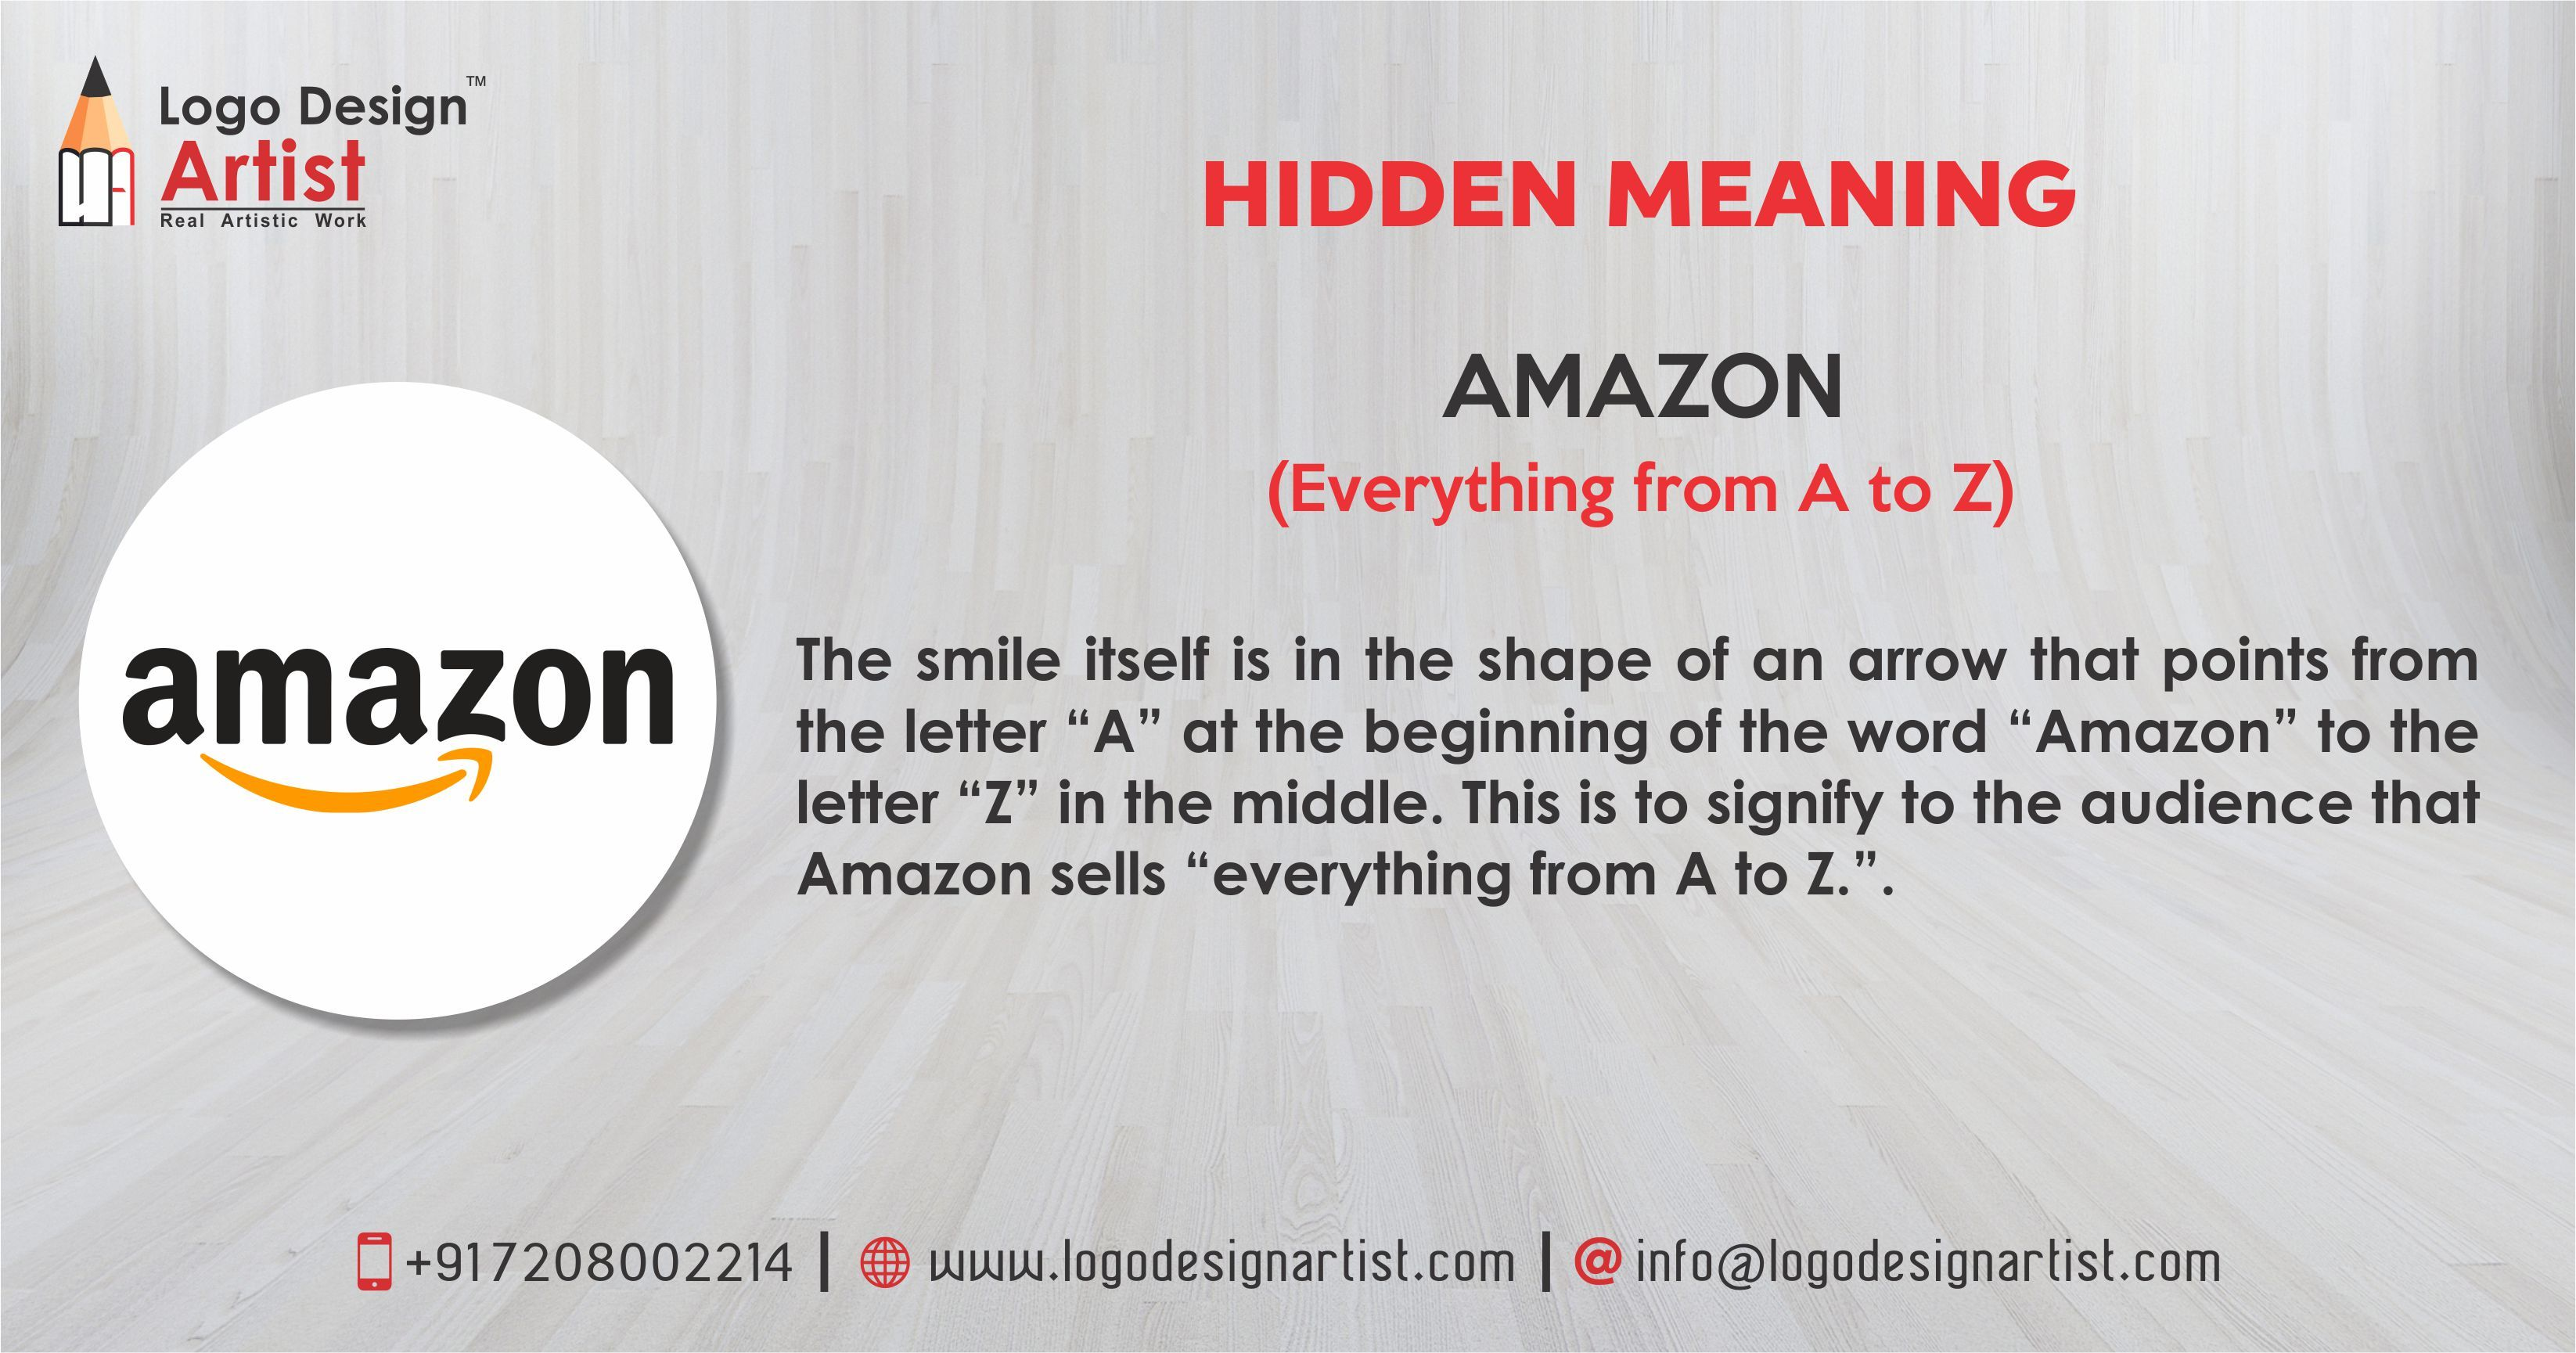 Hidden Meanings ♡ ⠀⠀⠀⠀⠀⠀⠀⠀⠀⠀⠀⠀⠀⠀⠀ Have you ever looked at